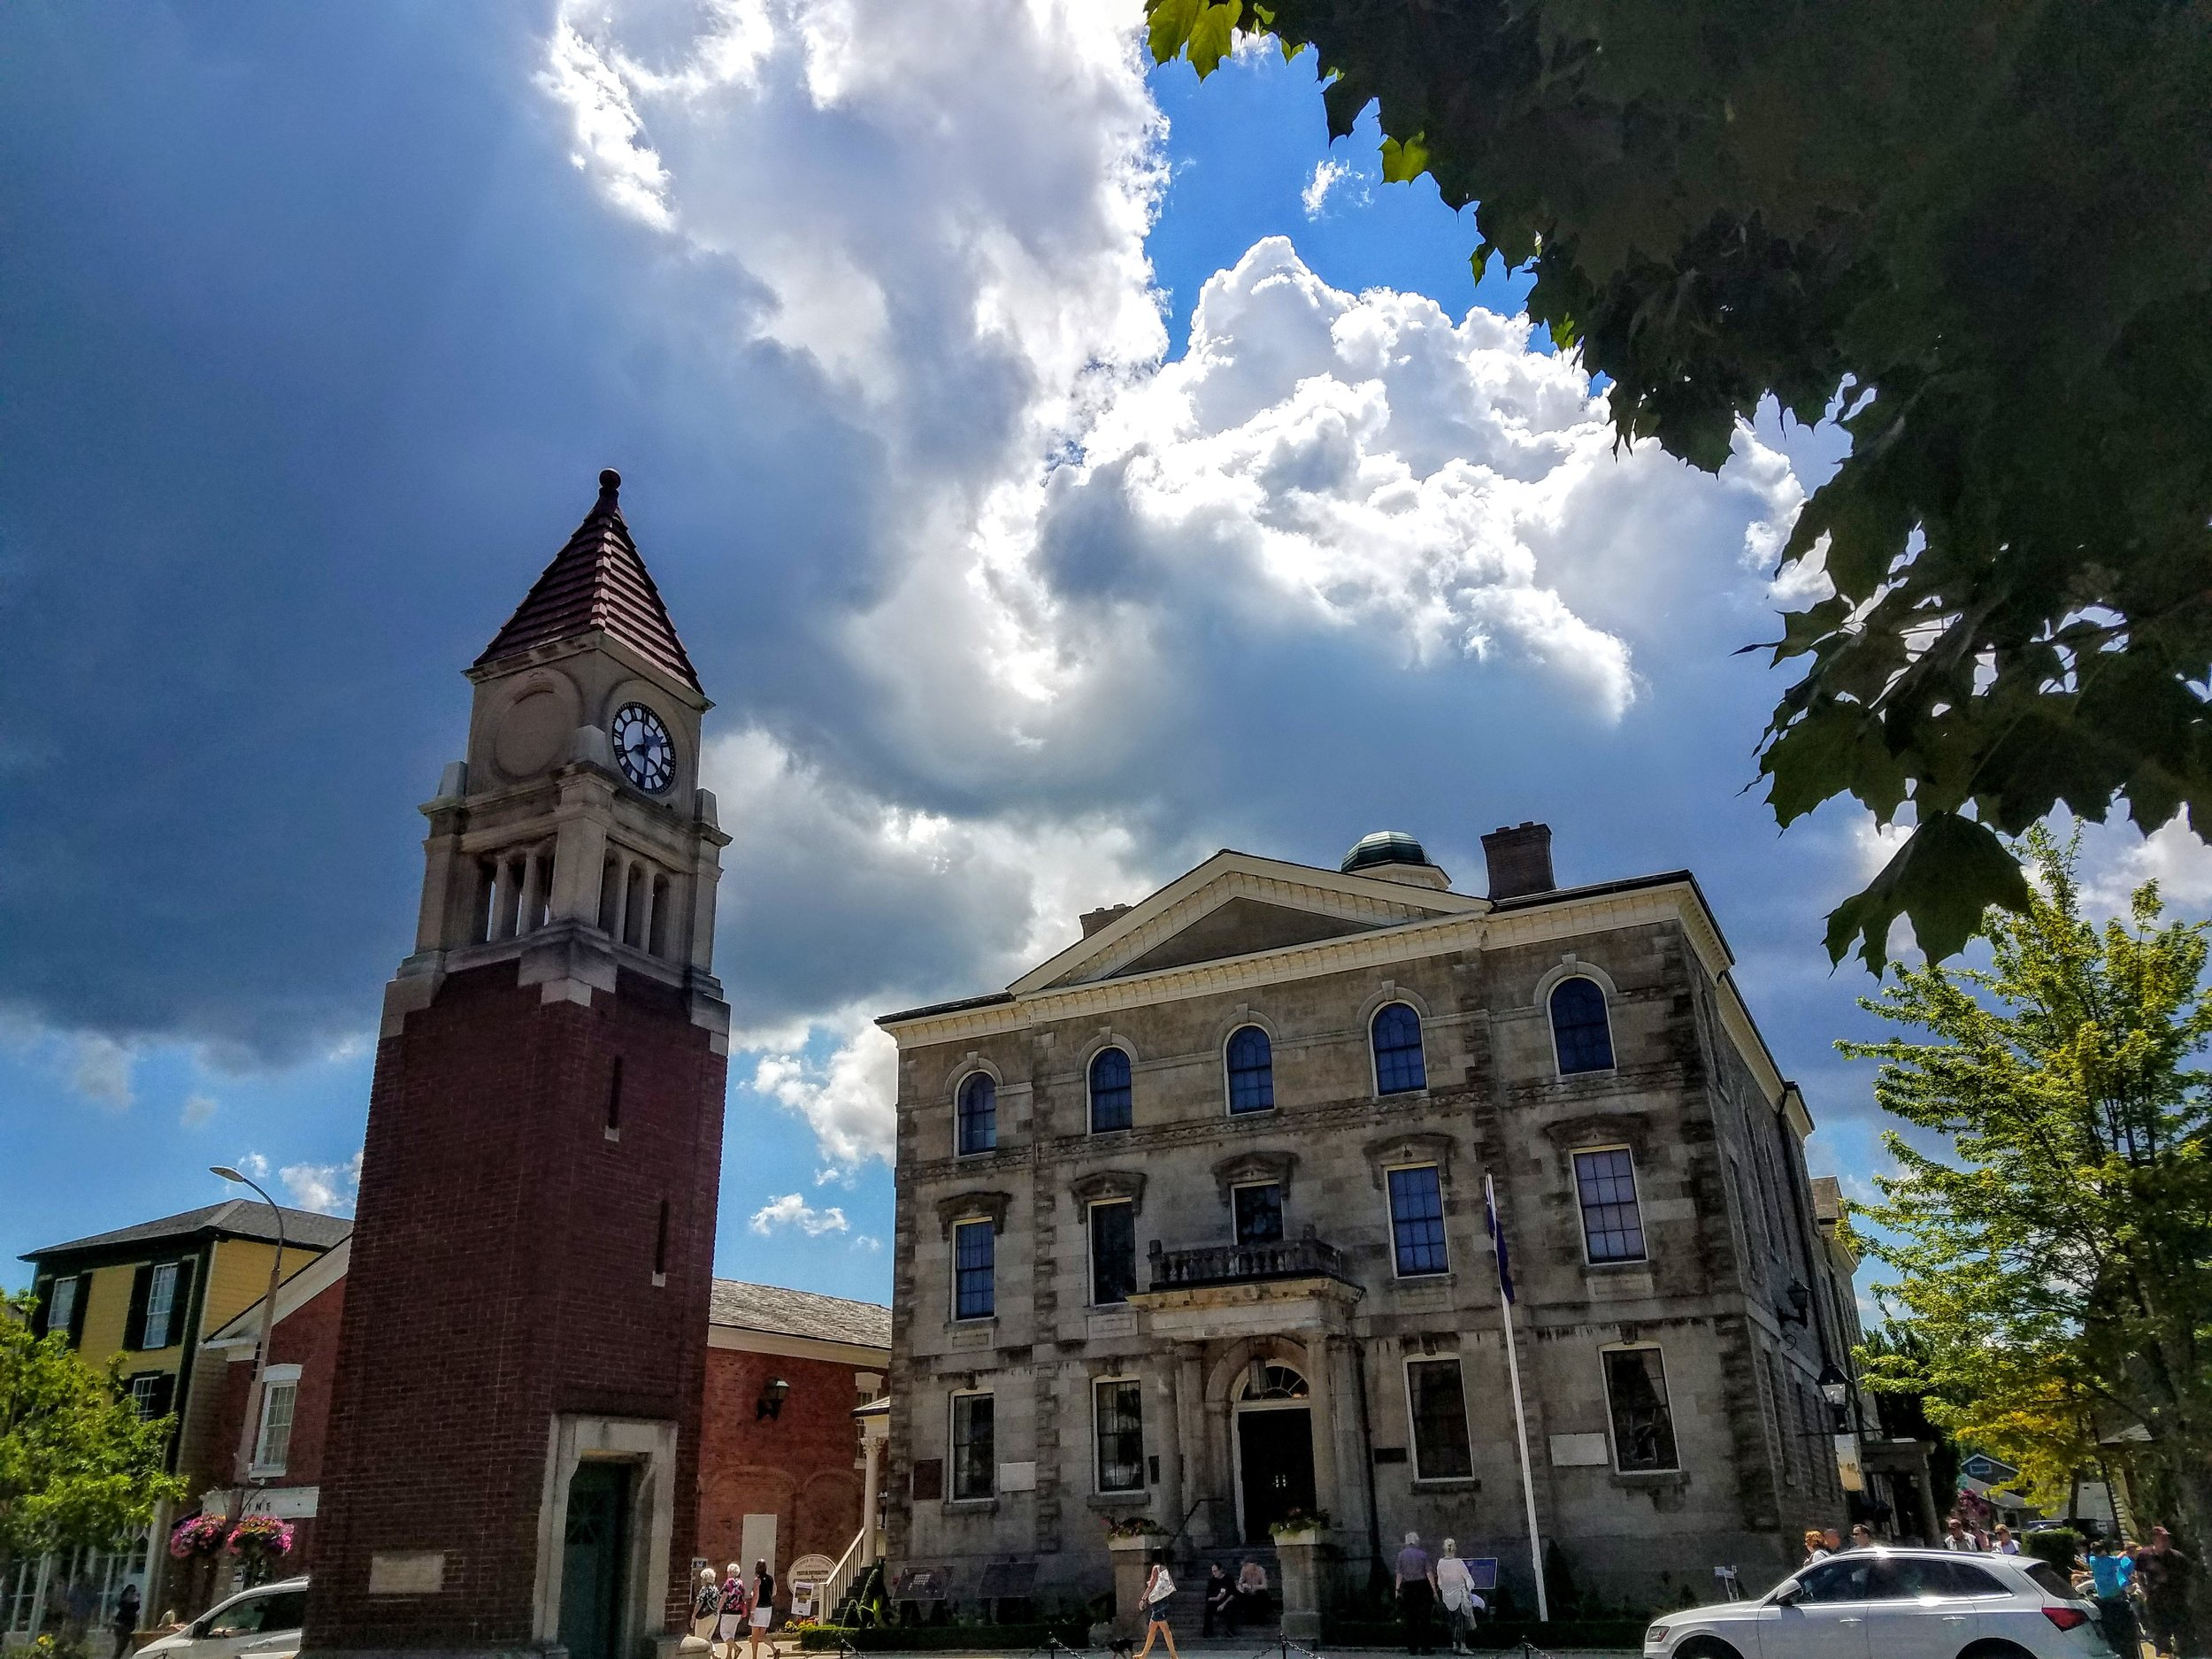 The pretty little town of Niagara-on-the-Lake, ON